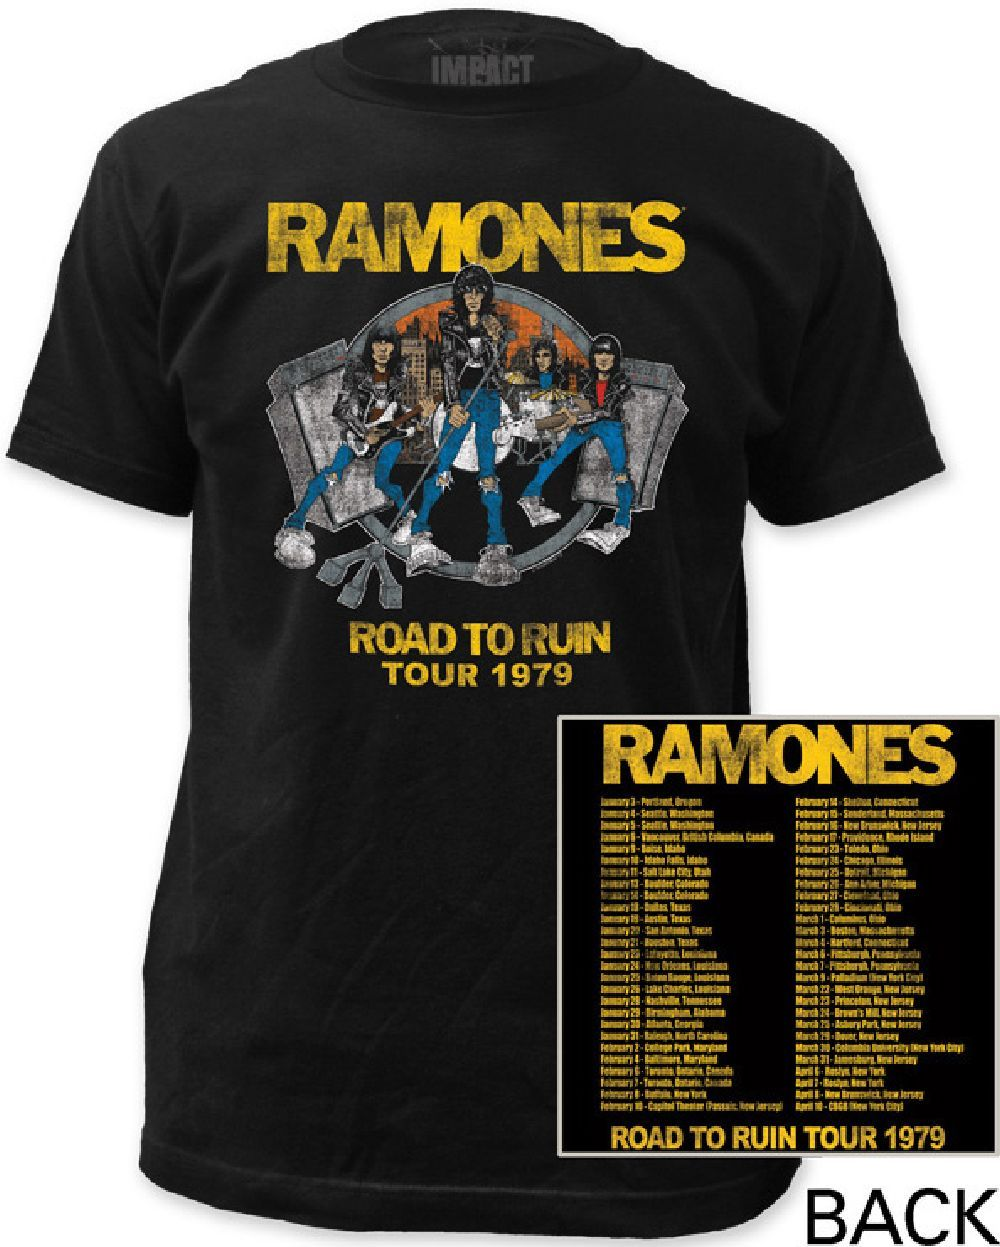 3338e1fa This vintage Ramones tshirt is from the band's 1979 Road to Ruin Tour.  Featuring the Road to Ruin album cover artwork on the front, the back of  the shirt ...